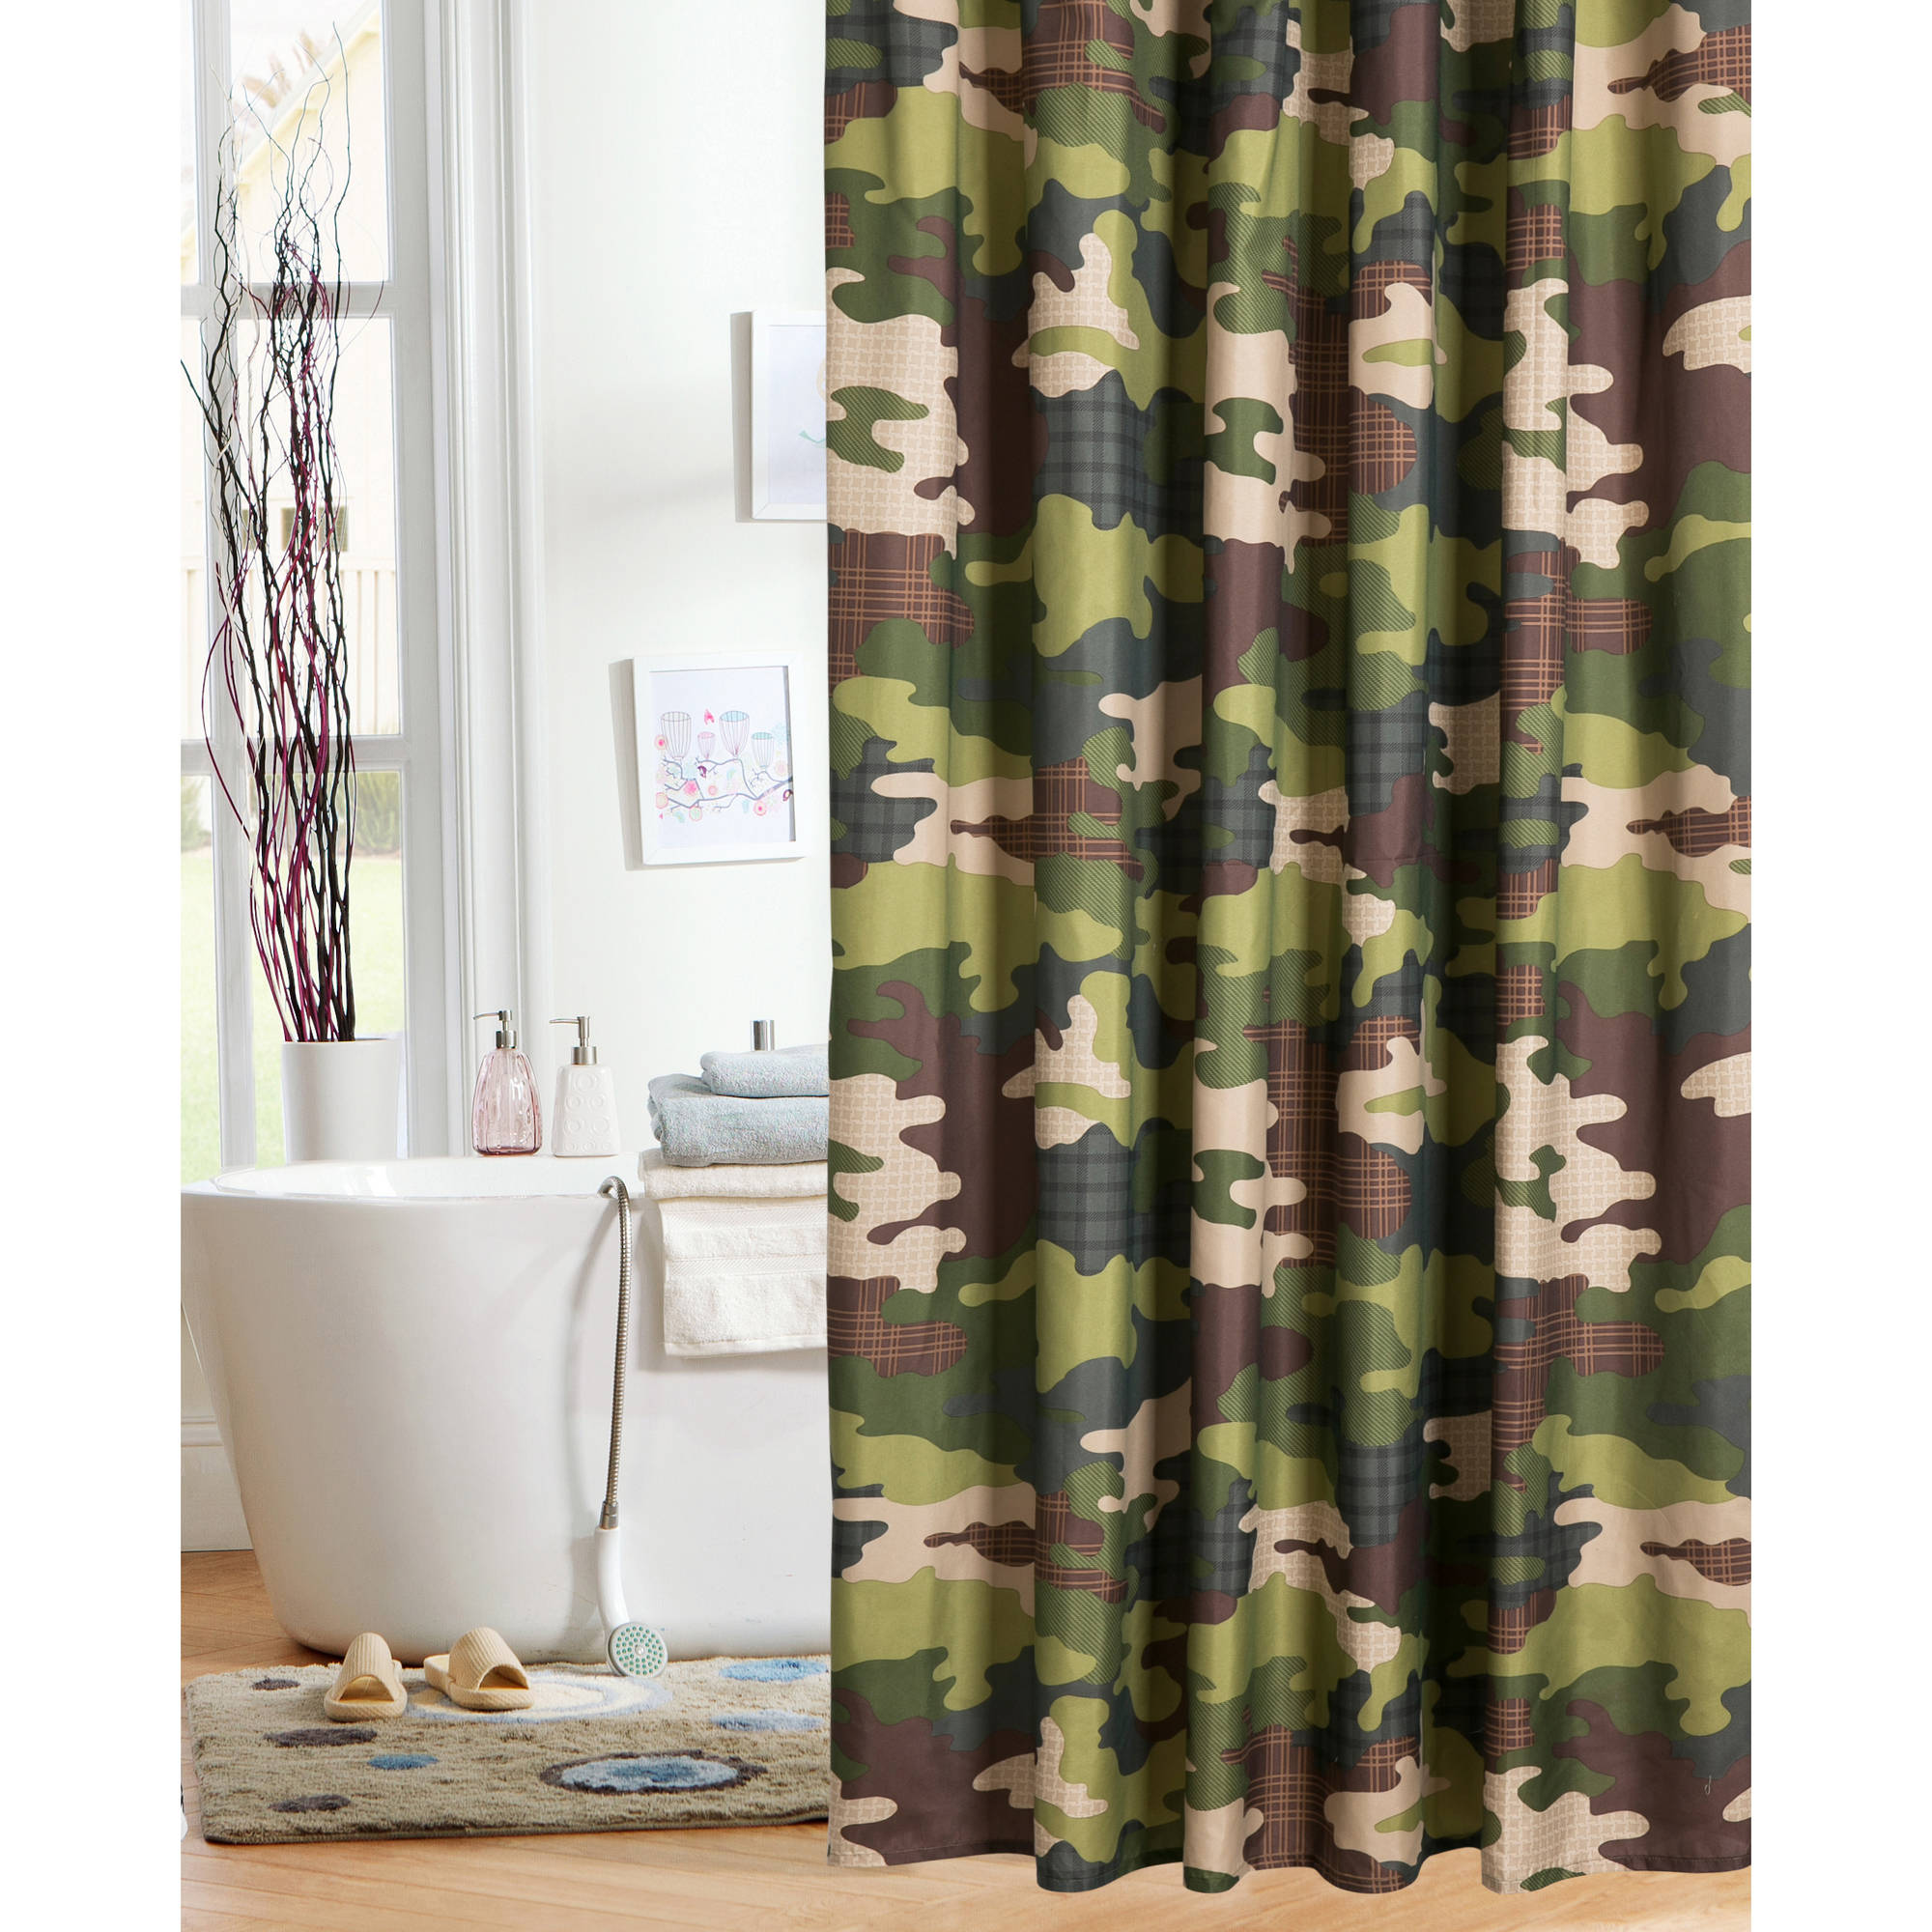 82 Shower Curtain Mainstays Kids Camo Shower Curtain